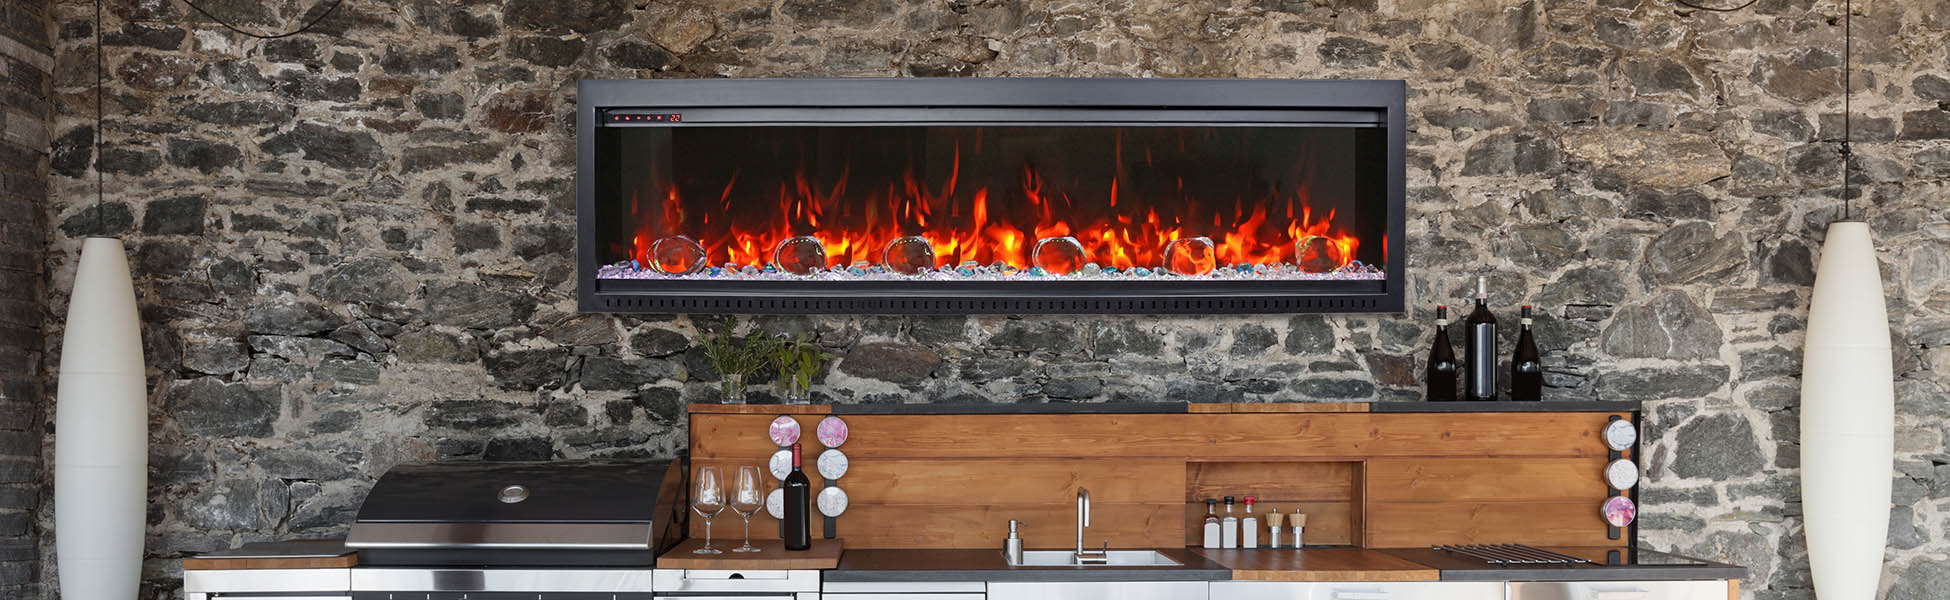 SYM Bespoke electric fireplace